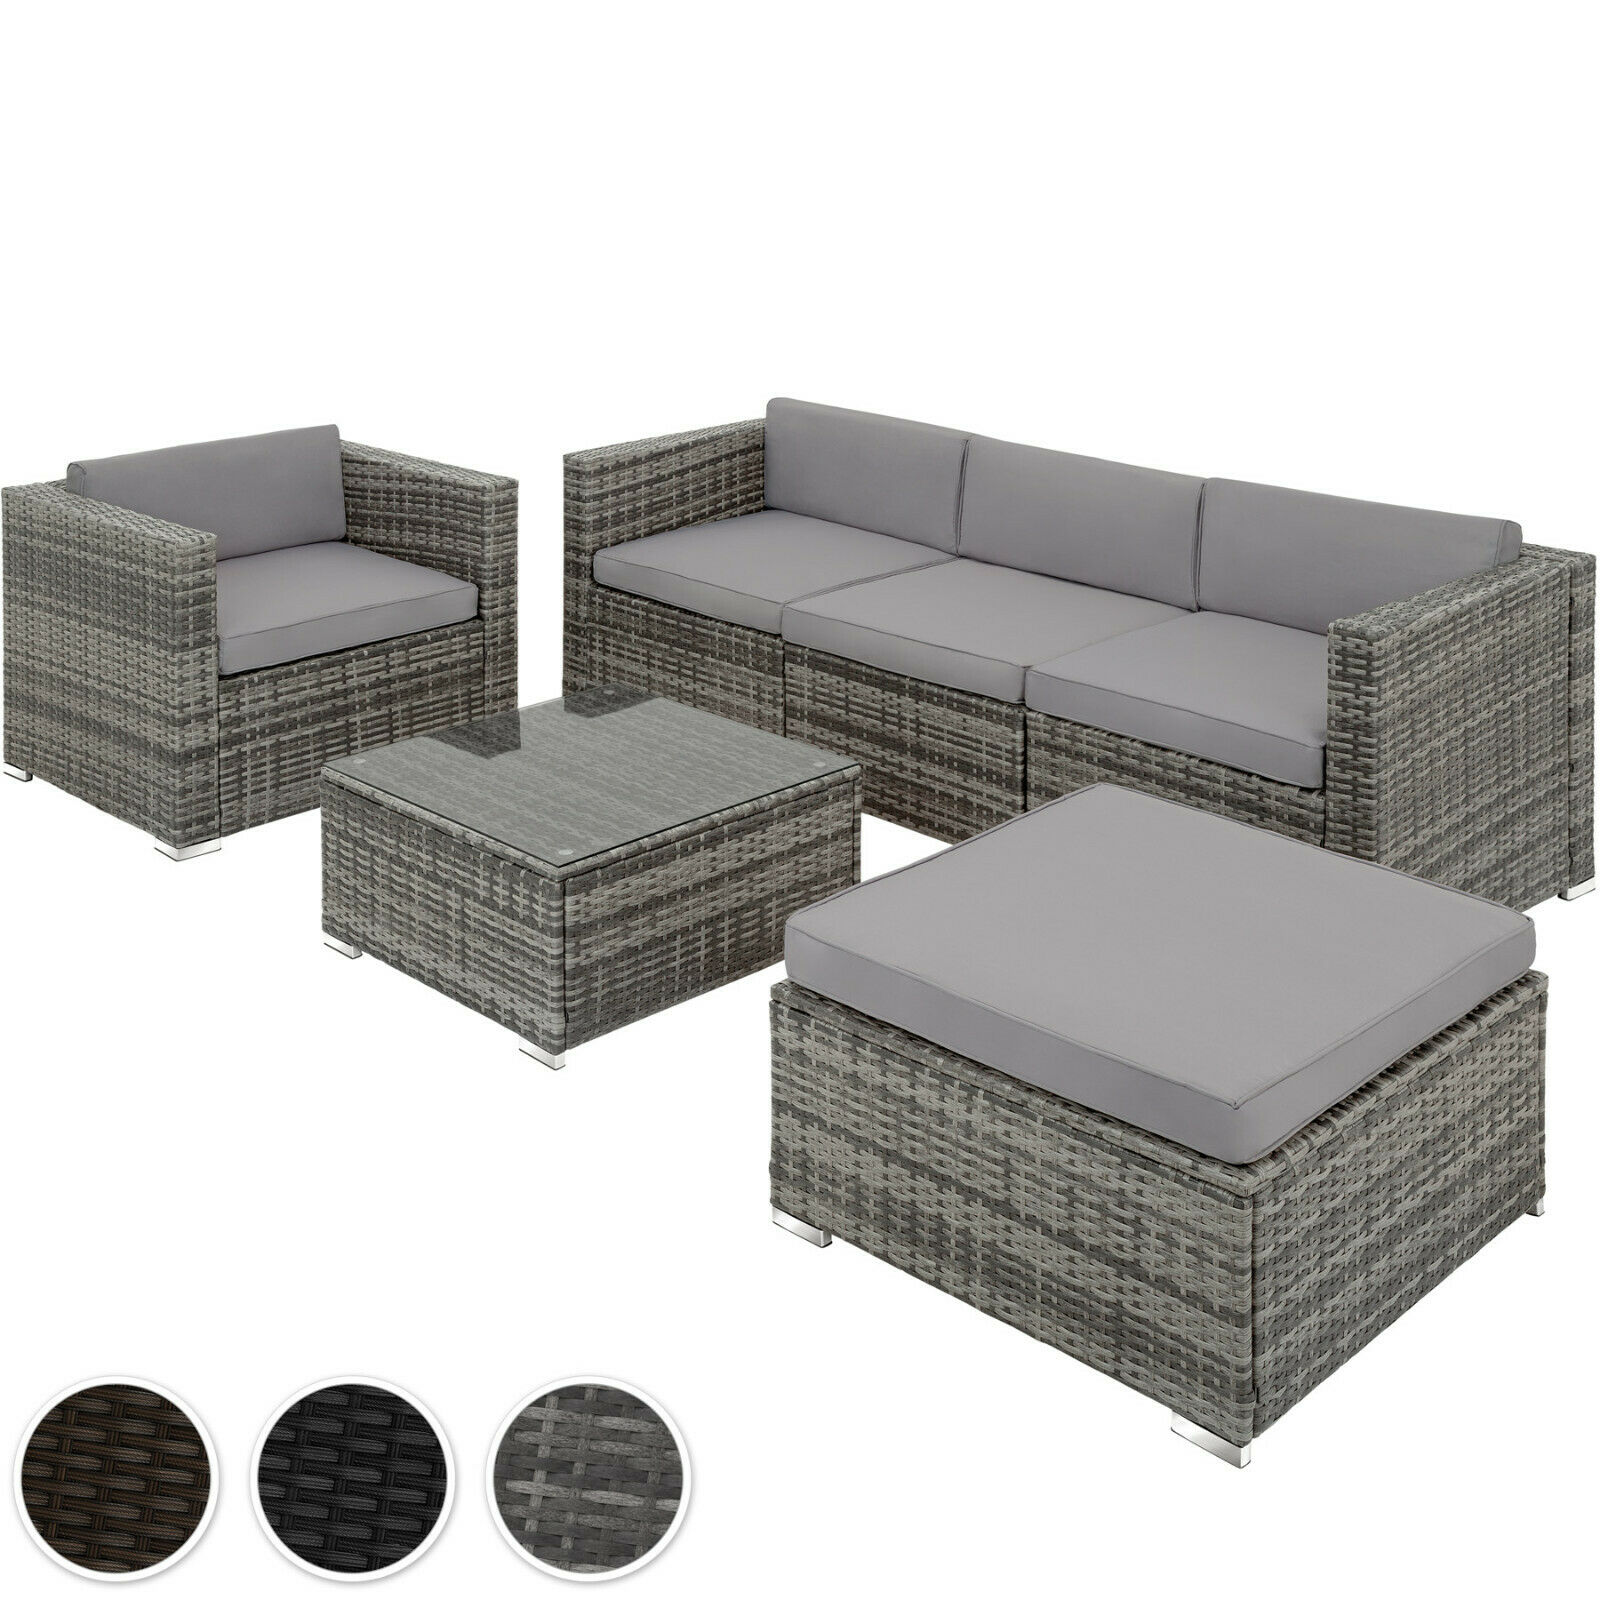 poly rattan garnitur sitzgruppe rattanm bel sofa m bel gartengernitur lounge picclick be. Black Bedroom Furniture Sets. Home Design Ideas